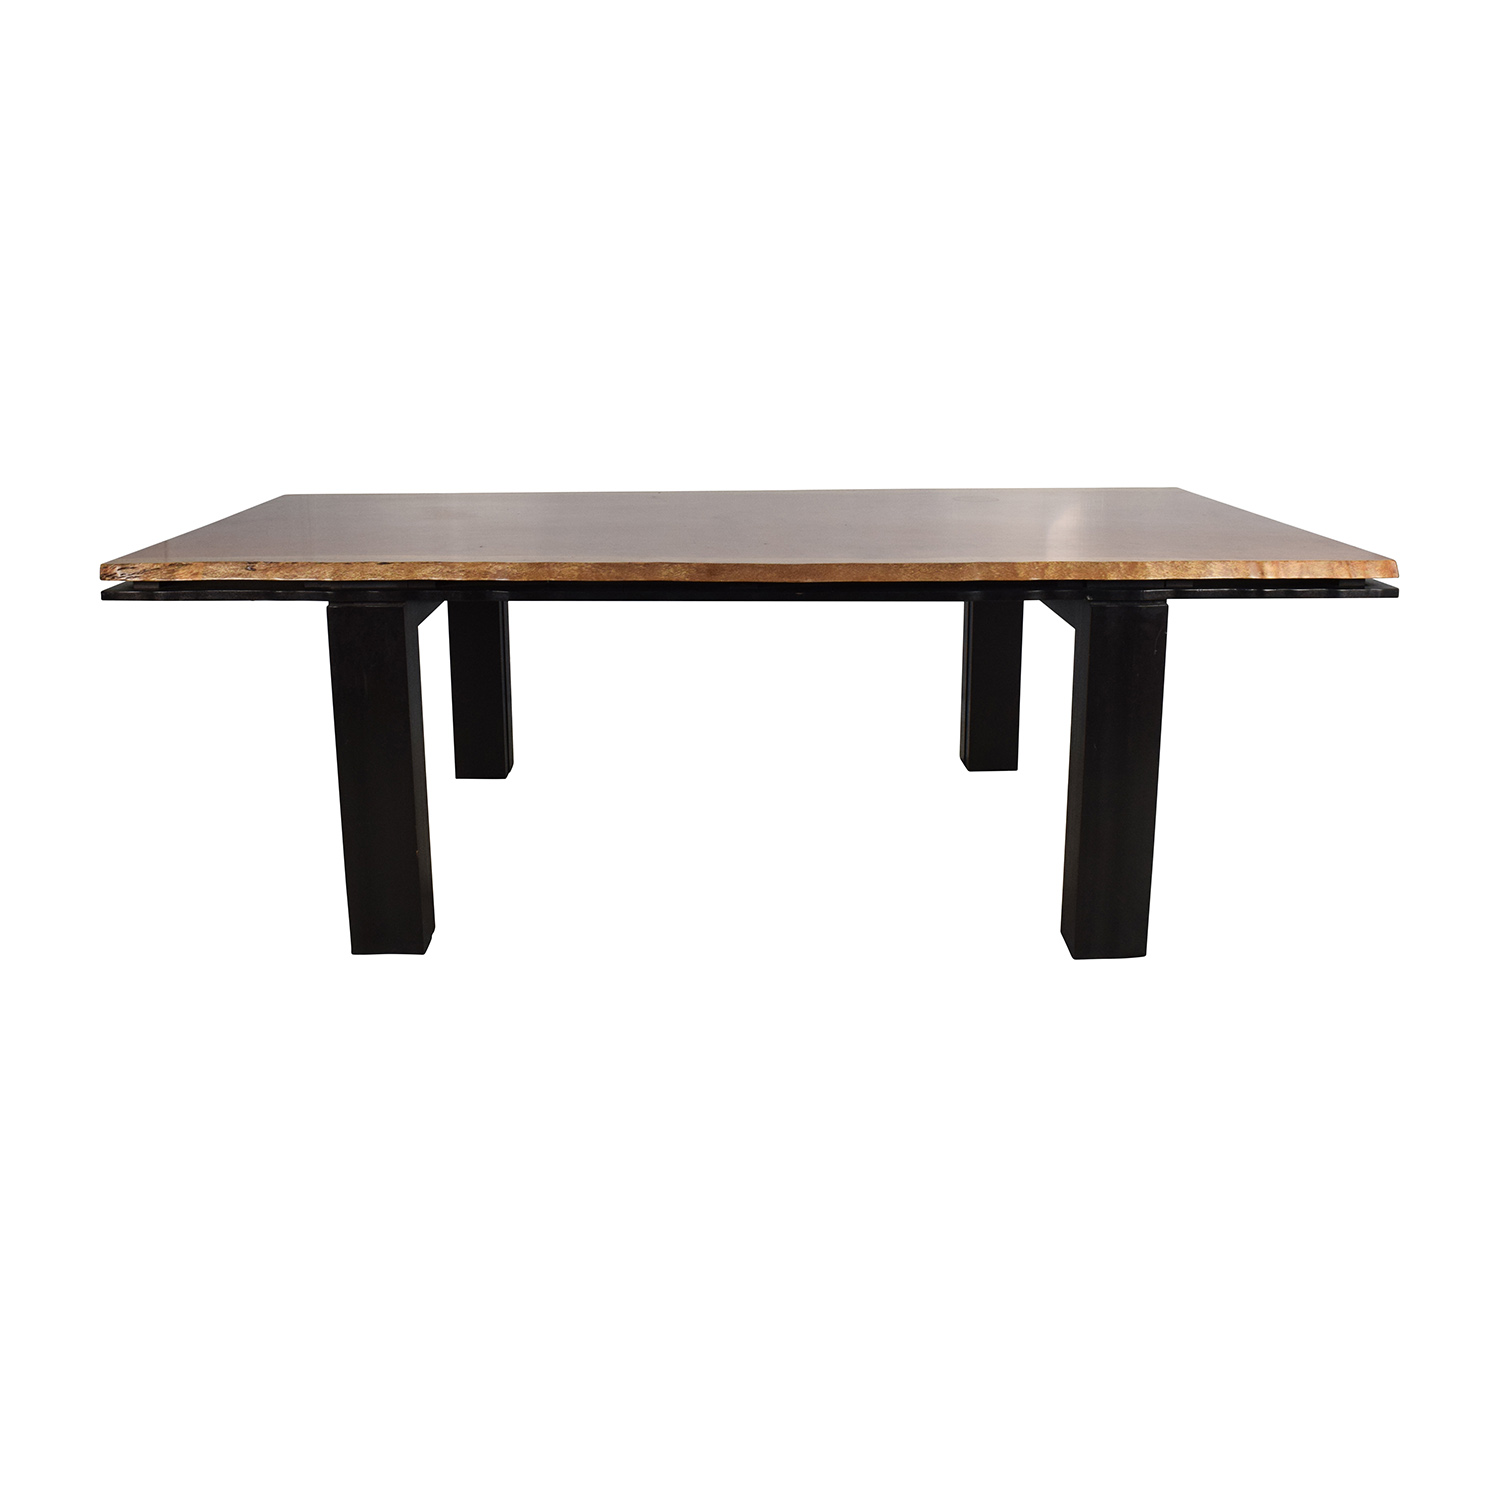 Curved Edge Wood Dining Table / Tables